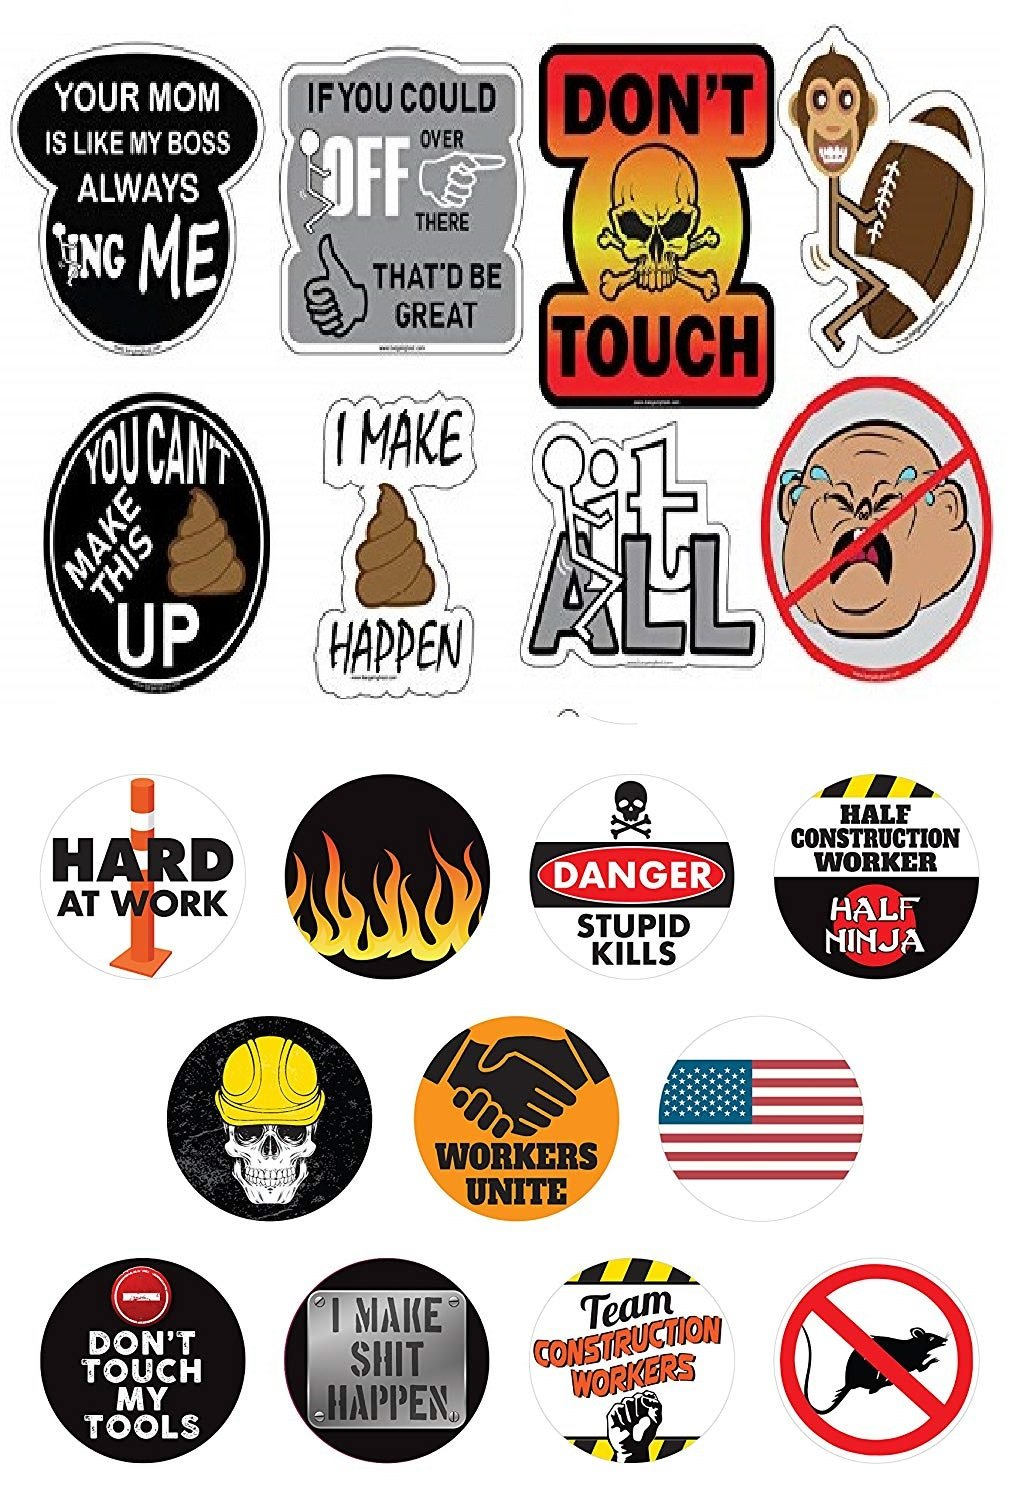 Best of the year 1 set funny hard hat helmet stickers 19 decal value pack extreme edition funny decals for construction electrician union osha